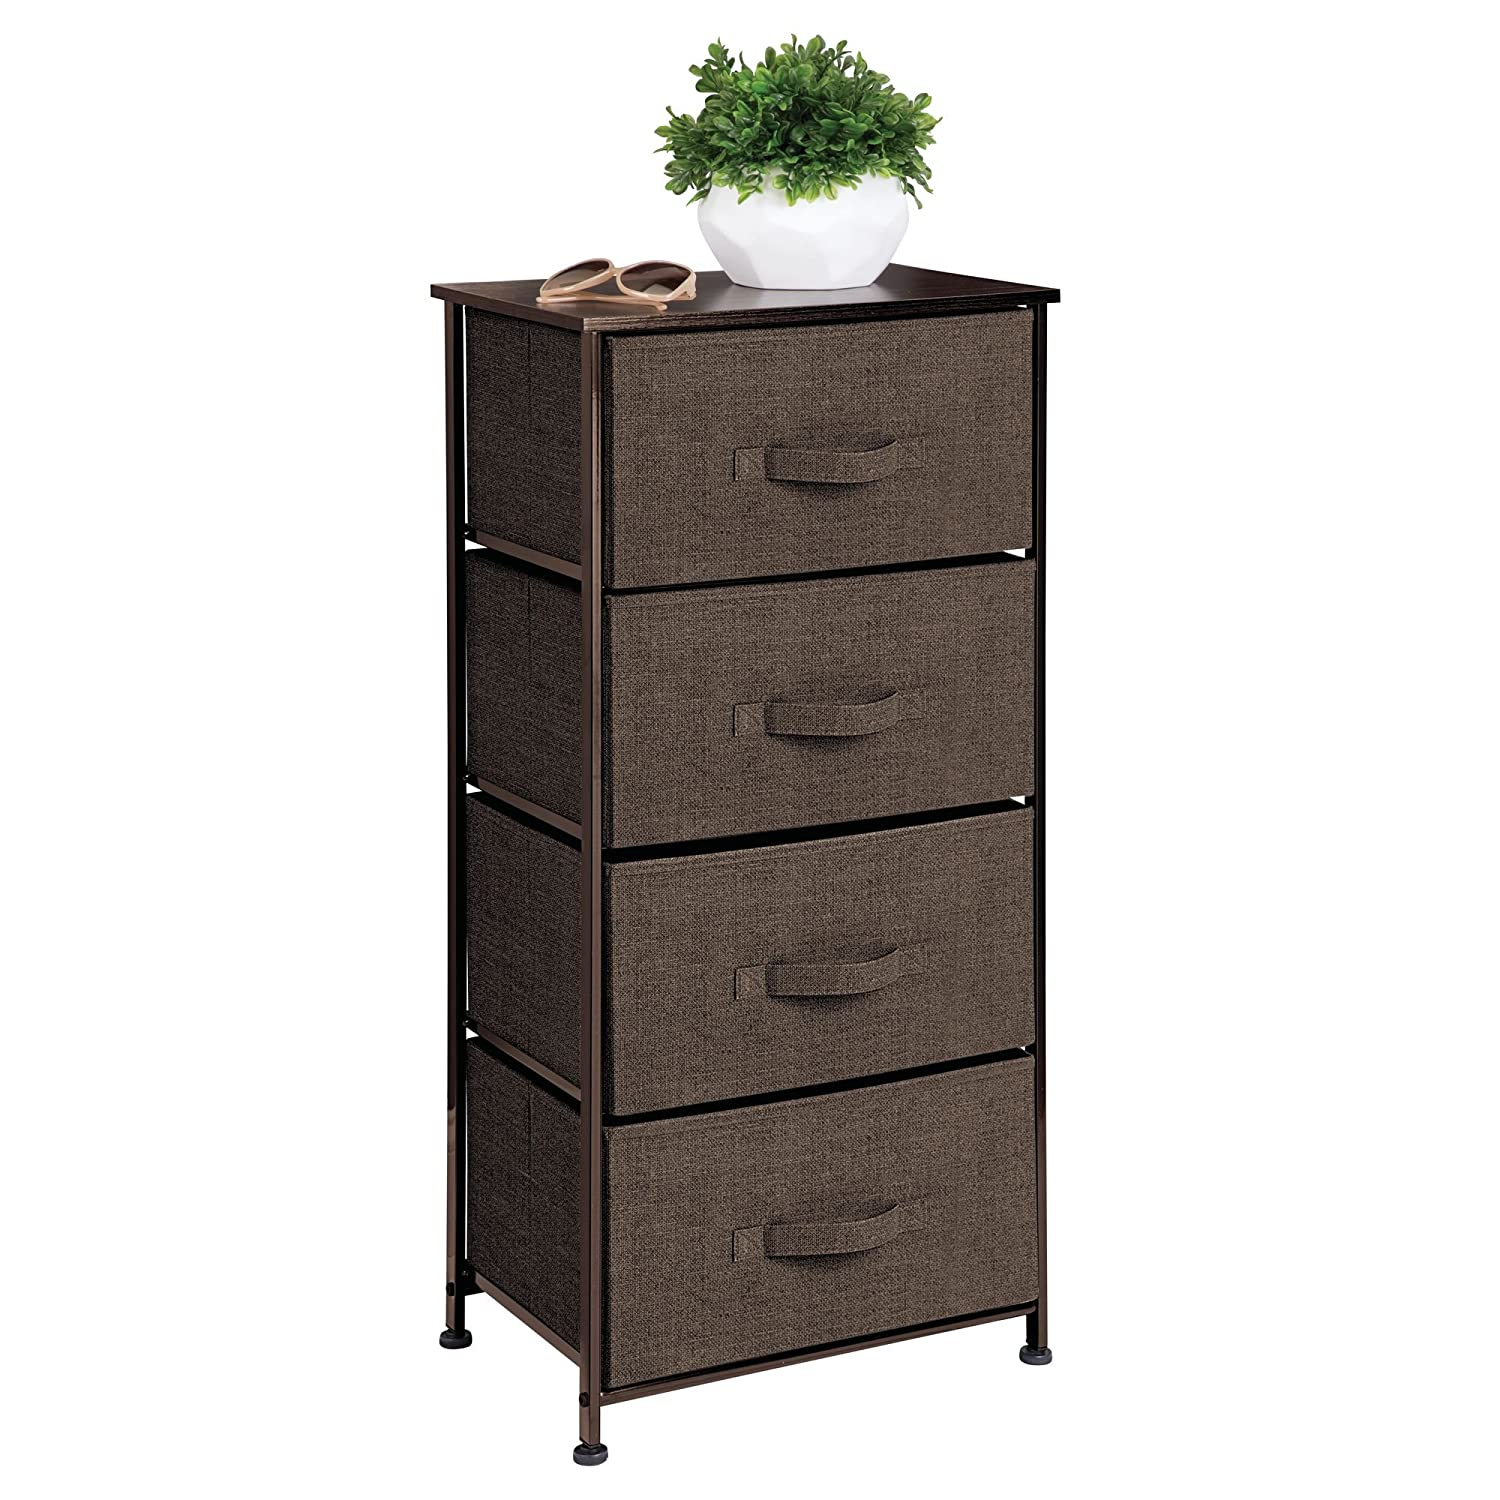 mDesign Vertical Dresser Storage Tower - Sturdy Steel Frame, Wood Top, Easy Pull Fabric Bins - Organizer Unit for Bedroom, Hallway, Entryway, Closets - Textured Print - 4 Drawers - Espresso Brown MetroDecor